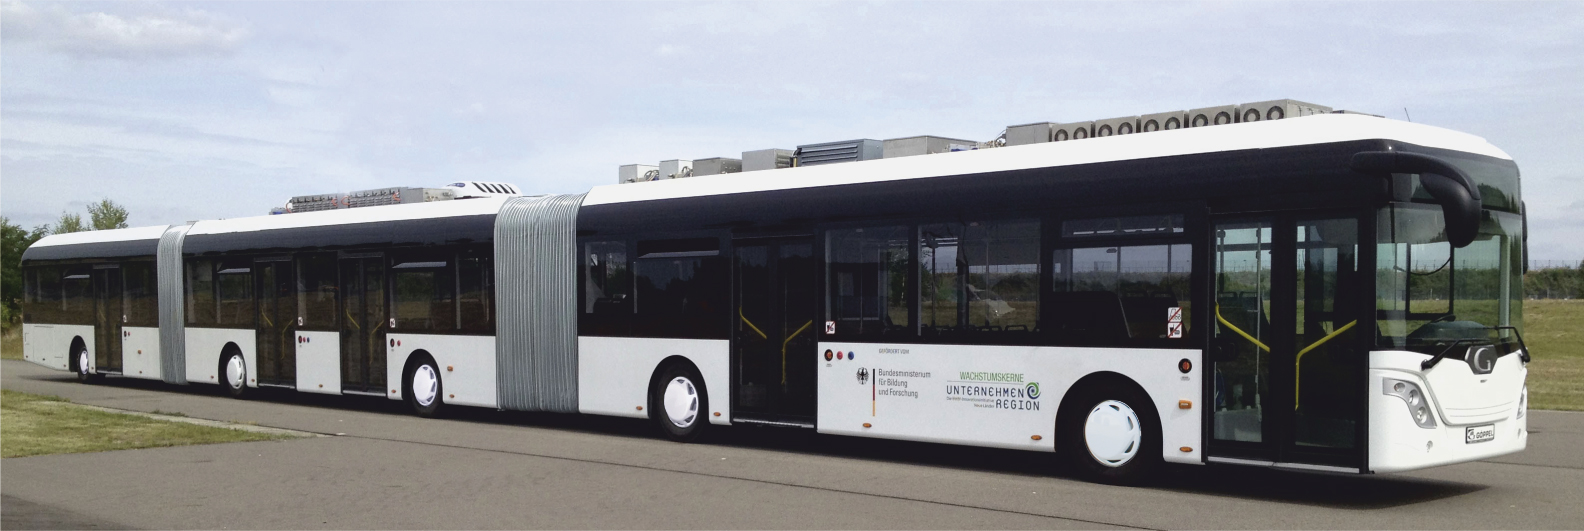 Longest bus in the world coming to Dresden, Germany